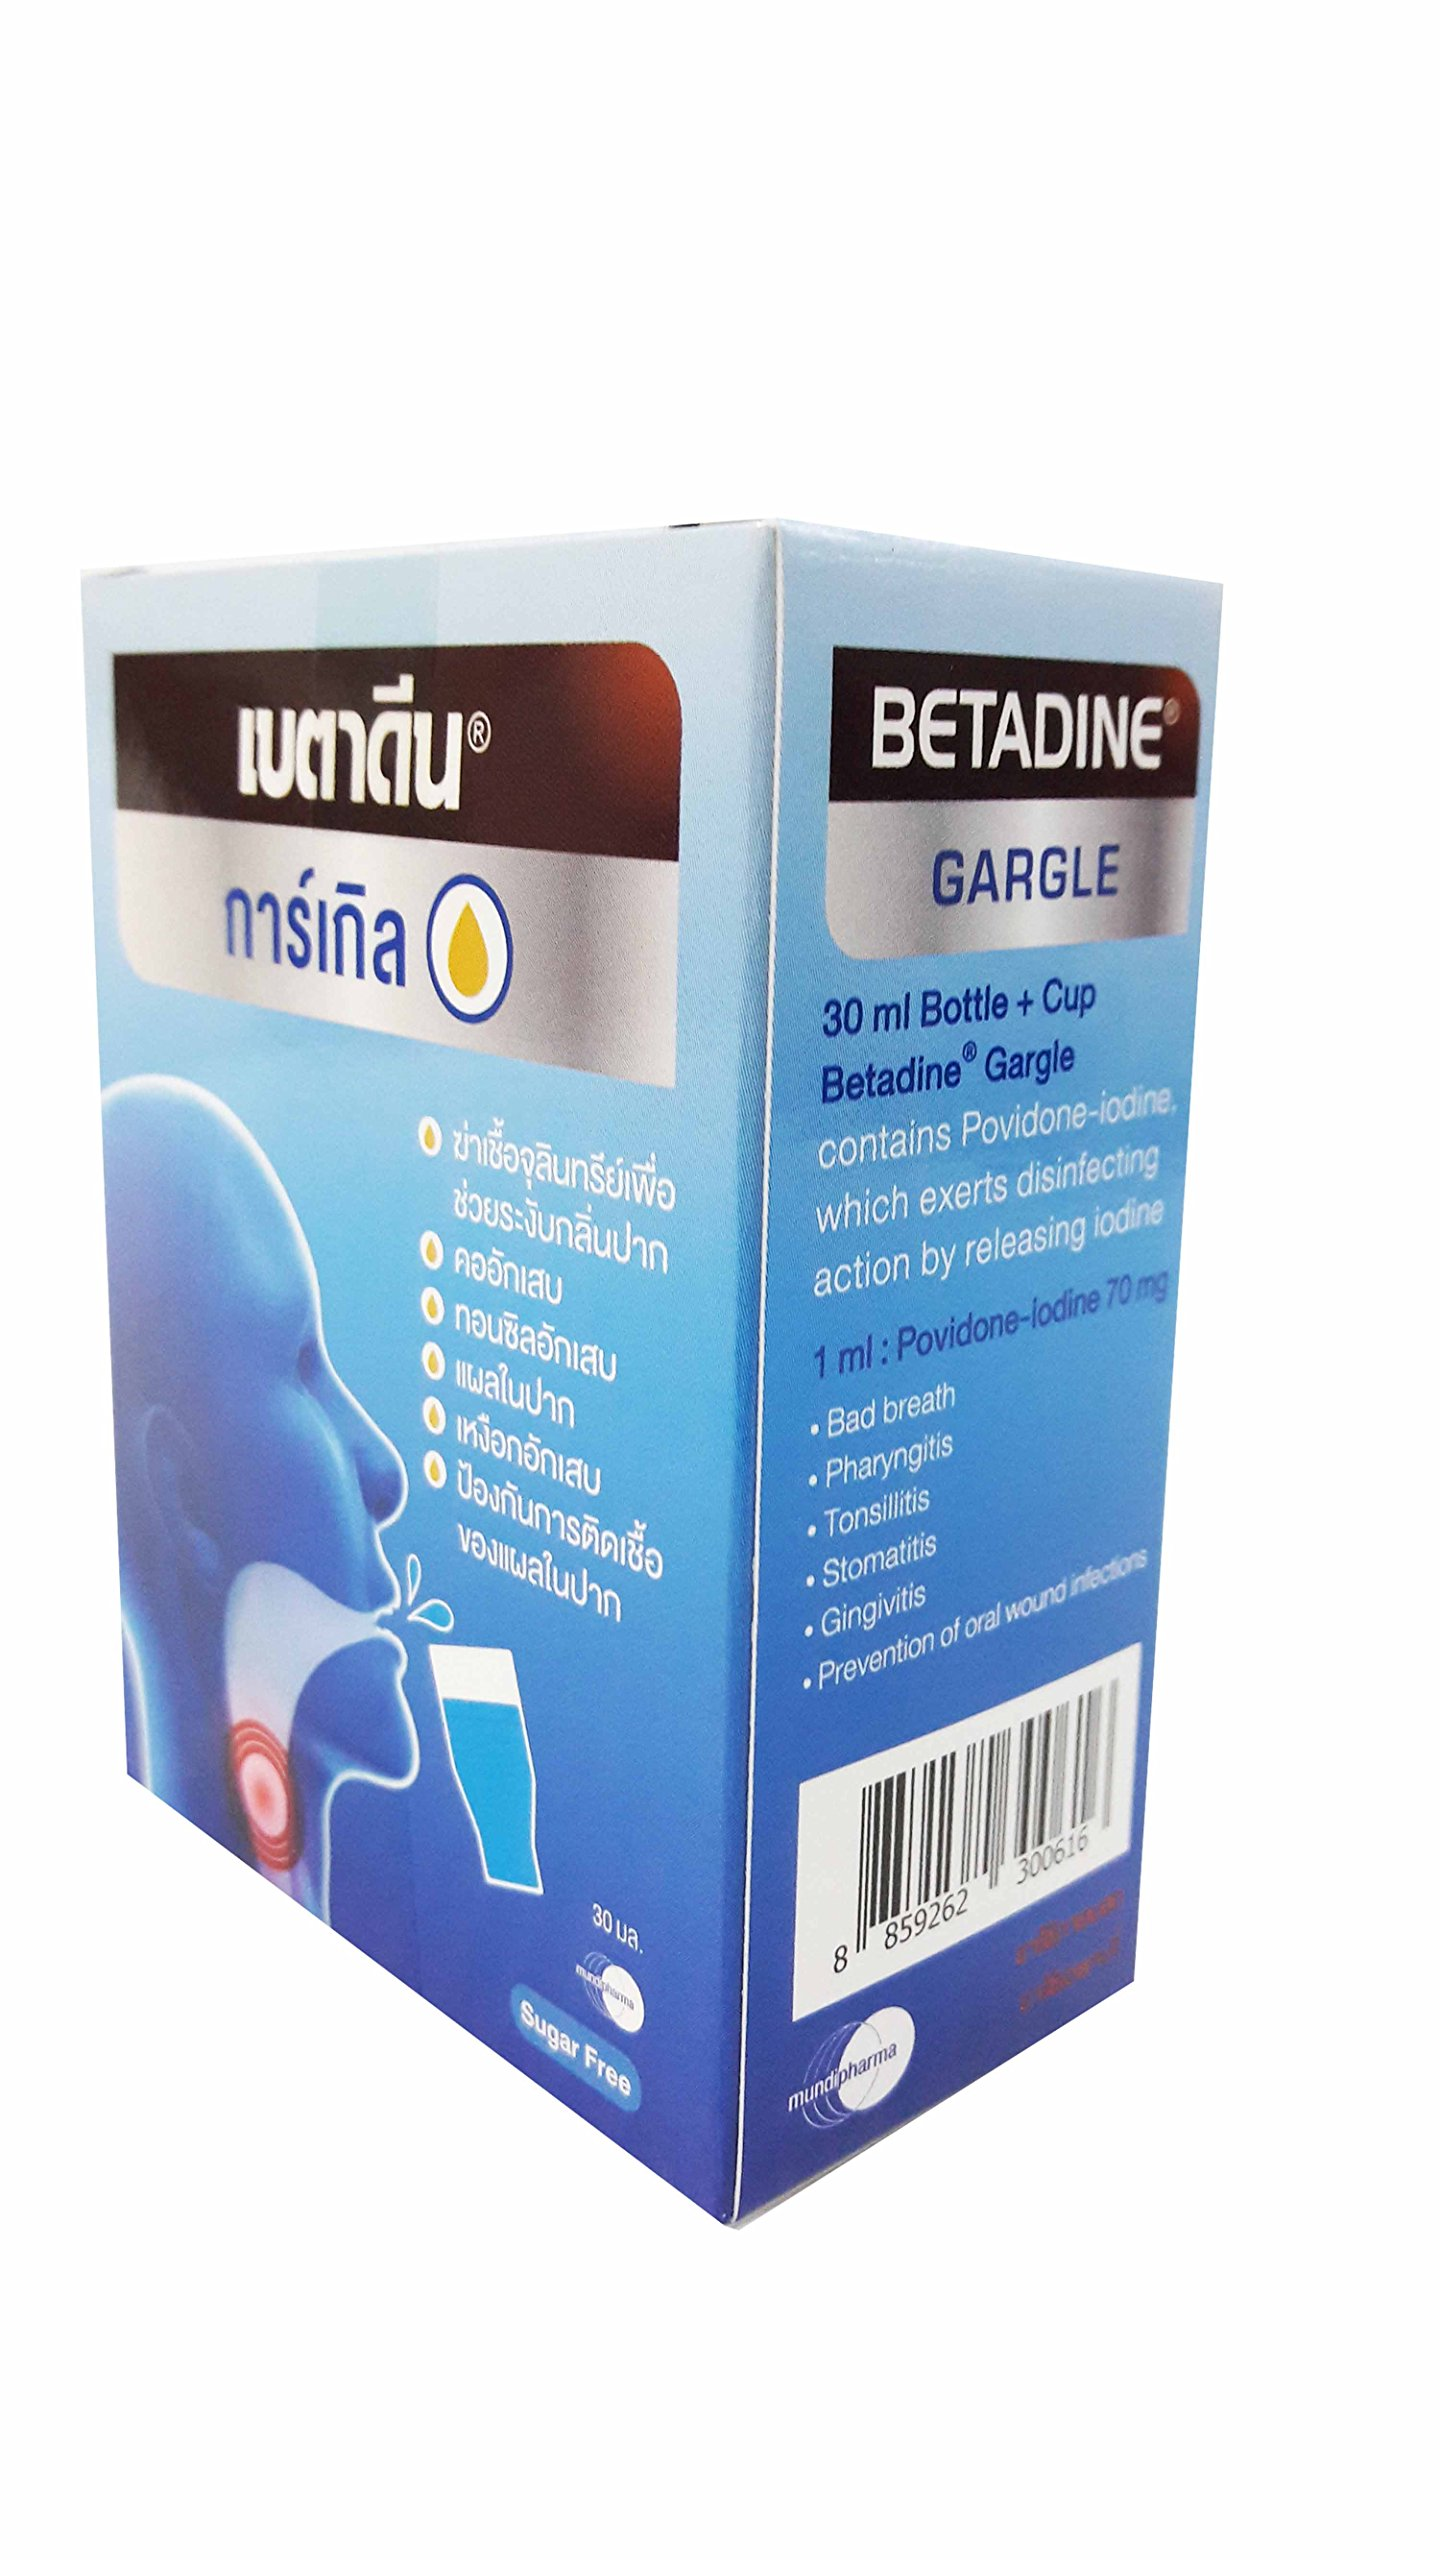 2 Packs of Betadine Gargle, Prevention of oral wound infections, Bad breath, Pharyngitis, Tonsillitis, Gingivitis. Sugar free. (30 ml./ pack)